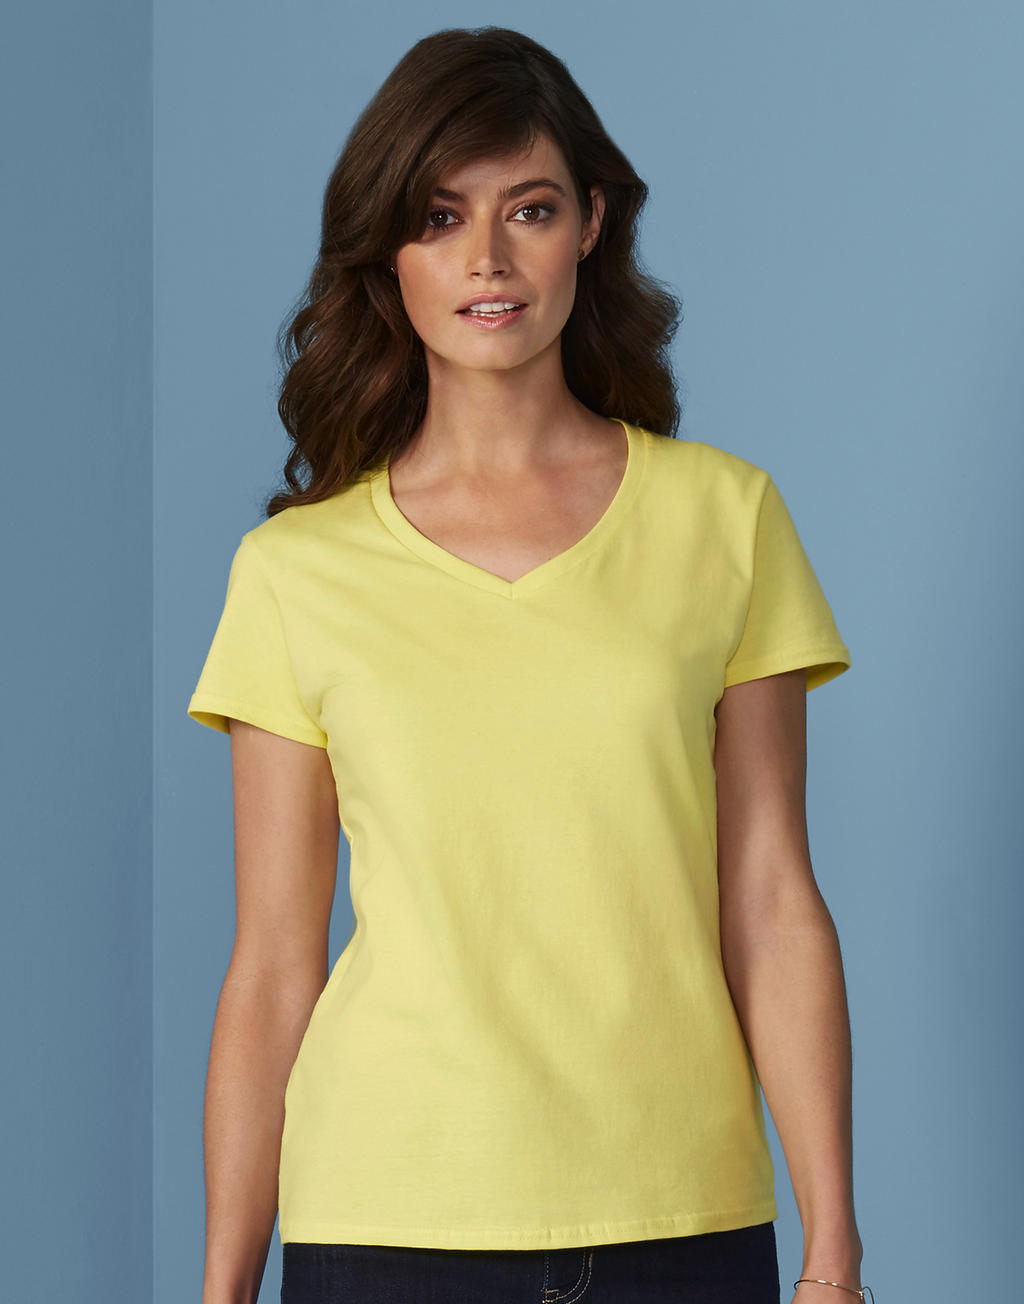 4100VL PREMIUM COTTON® LADIES v-neck tričko